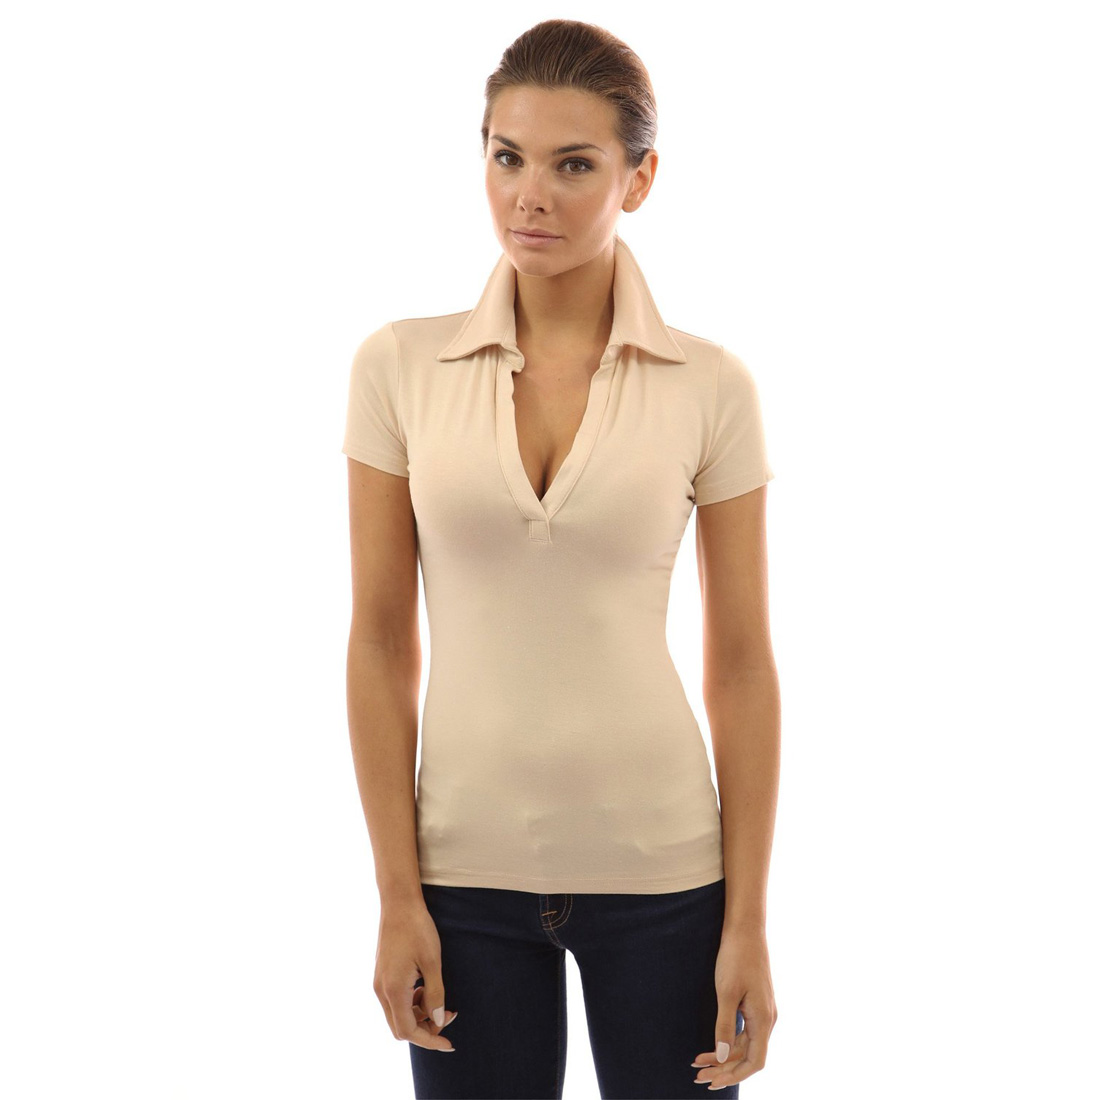 Womens v neck polo shirt long sleeve slim fit casual for Women s crew t shirts